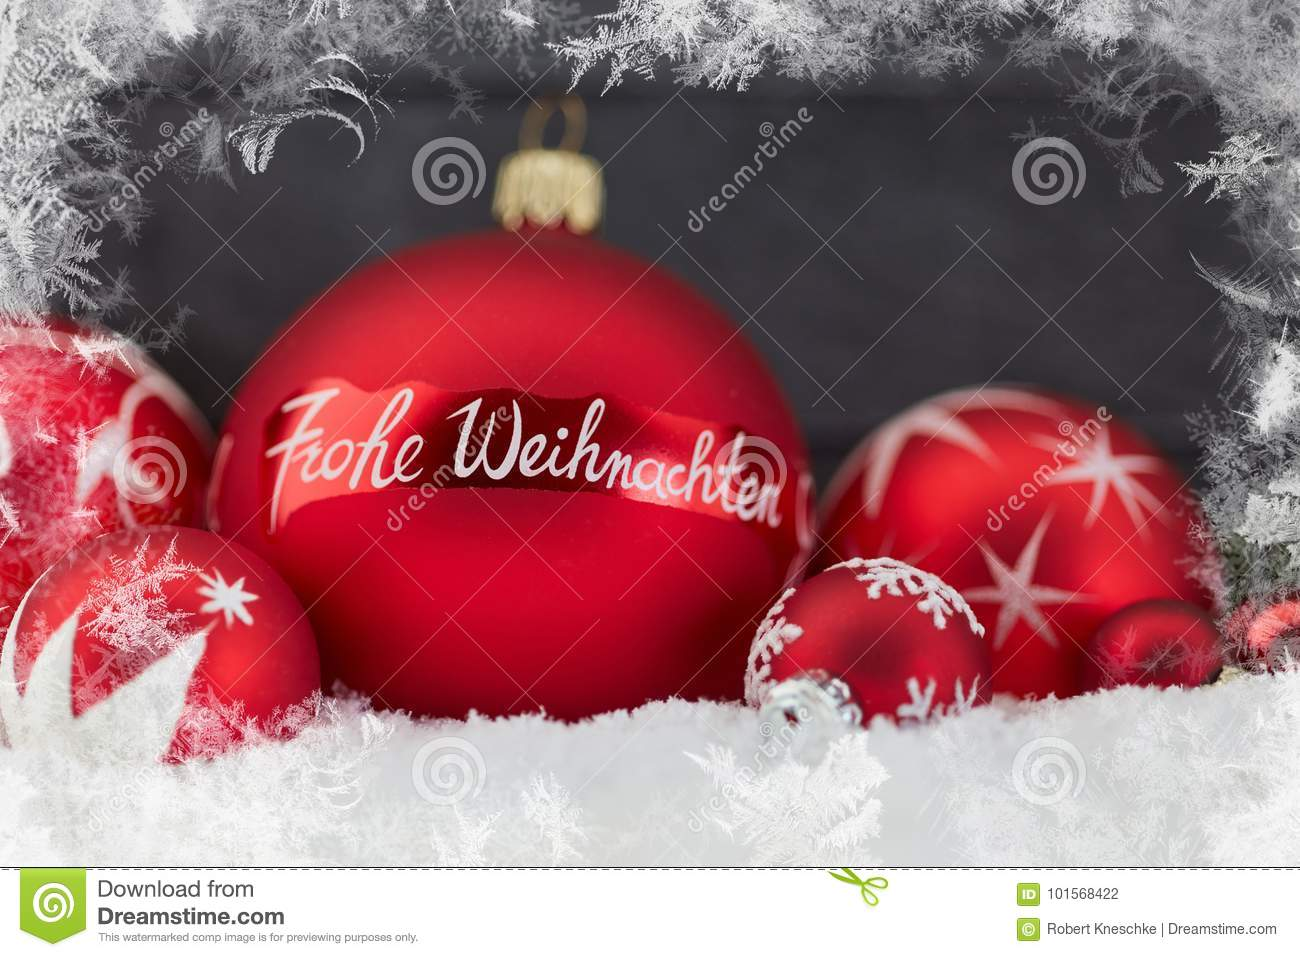 Frohe Weihnachten Frohe Weihnachten Merry Christmas Greeting Card Stock Photo